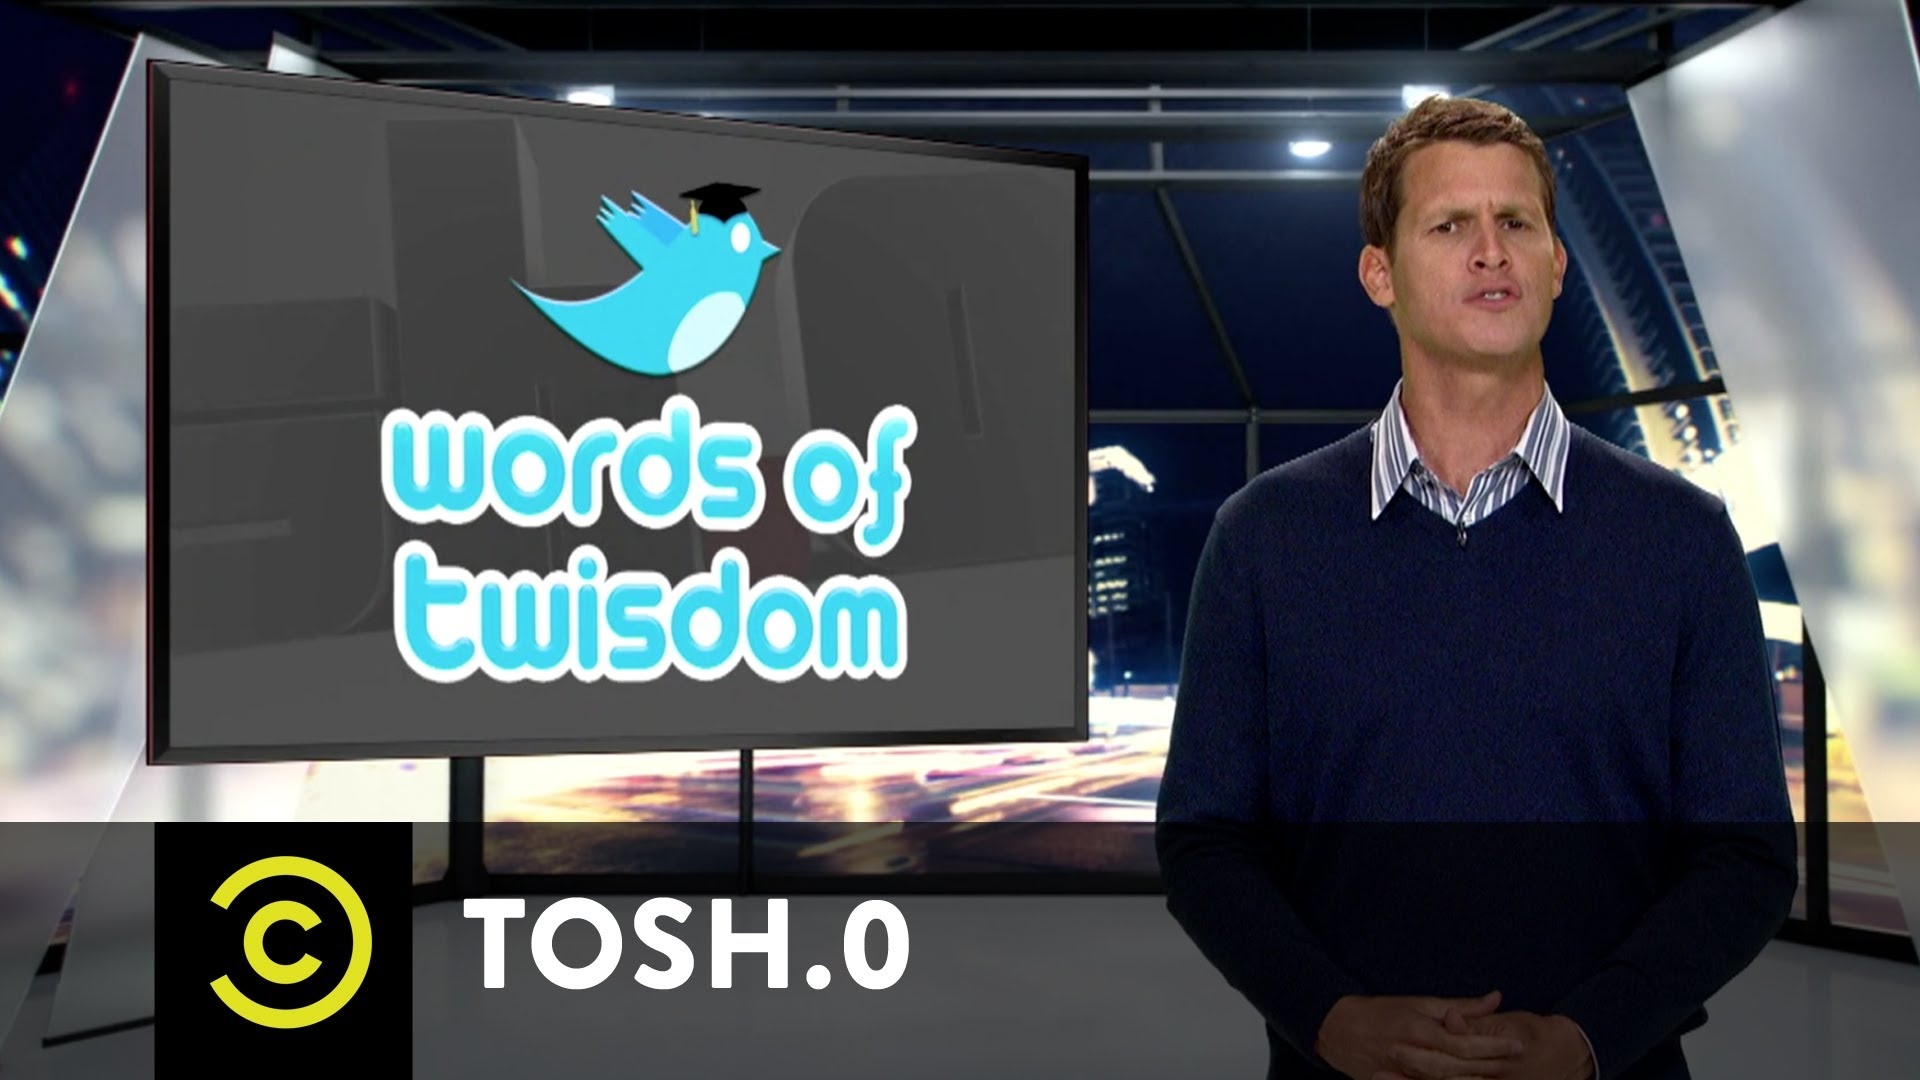 Tosh 0 surfer web redemption